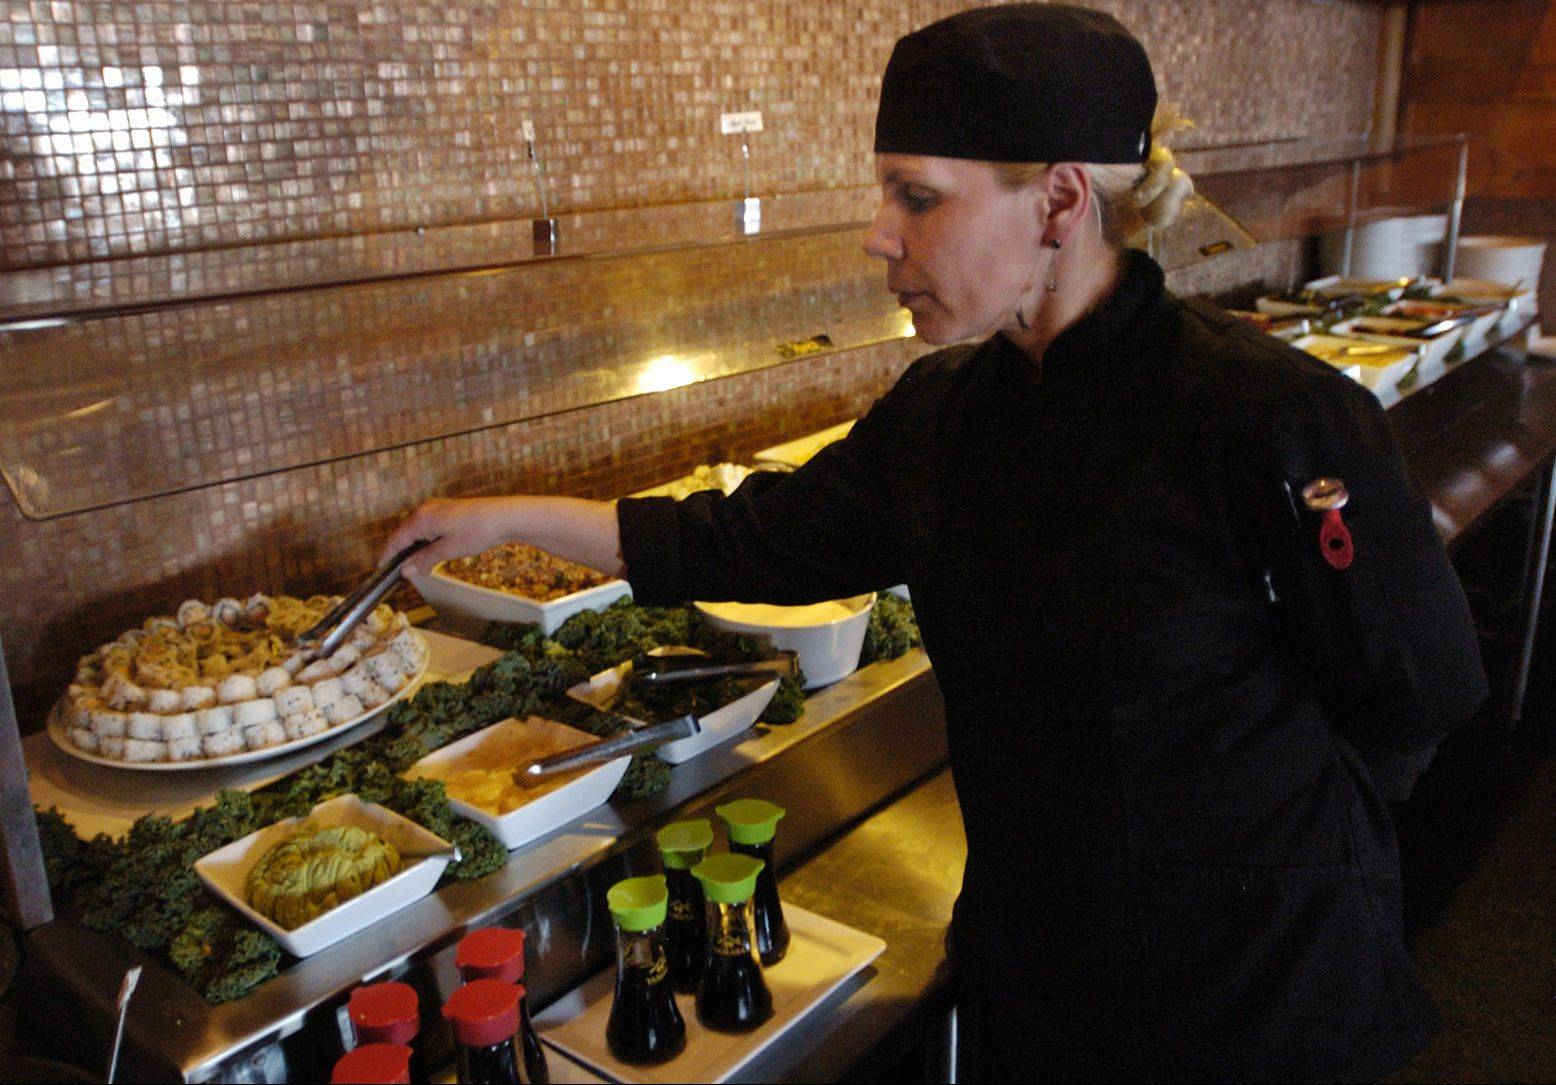 Chef Angelica Russomano sets up the salad bar that includes fresh sushi at Sake & Samba Brazilian Churrascaria in Vernon Hills.